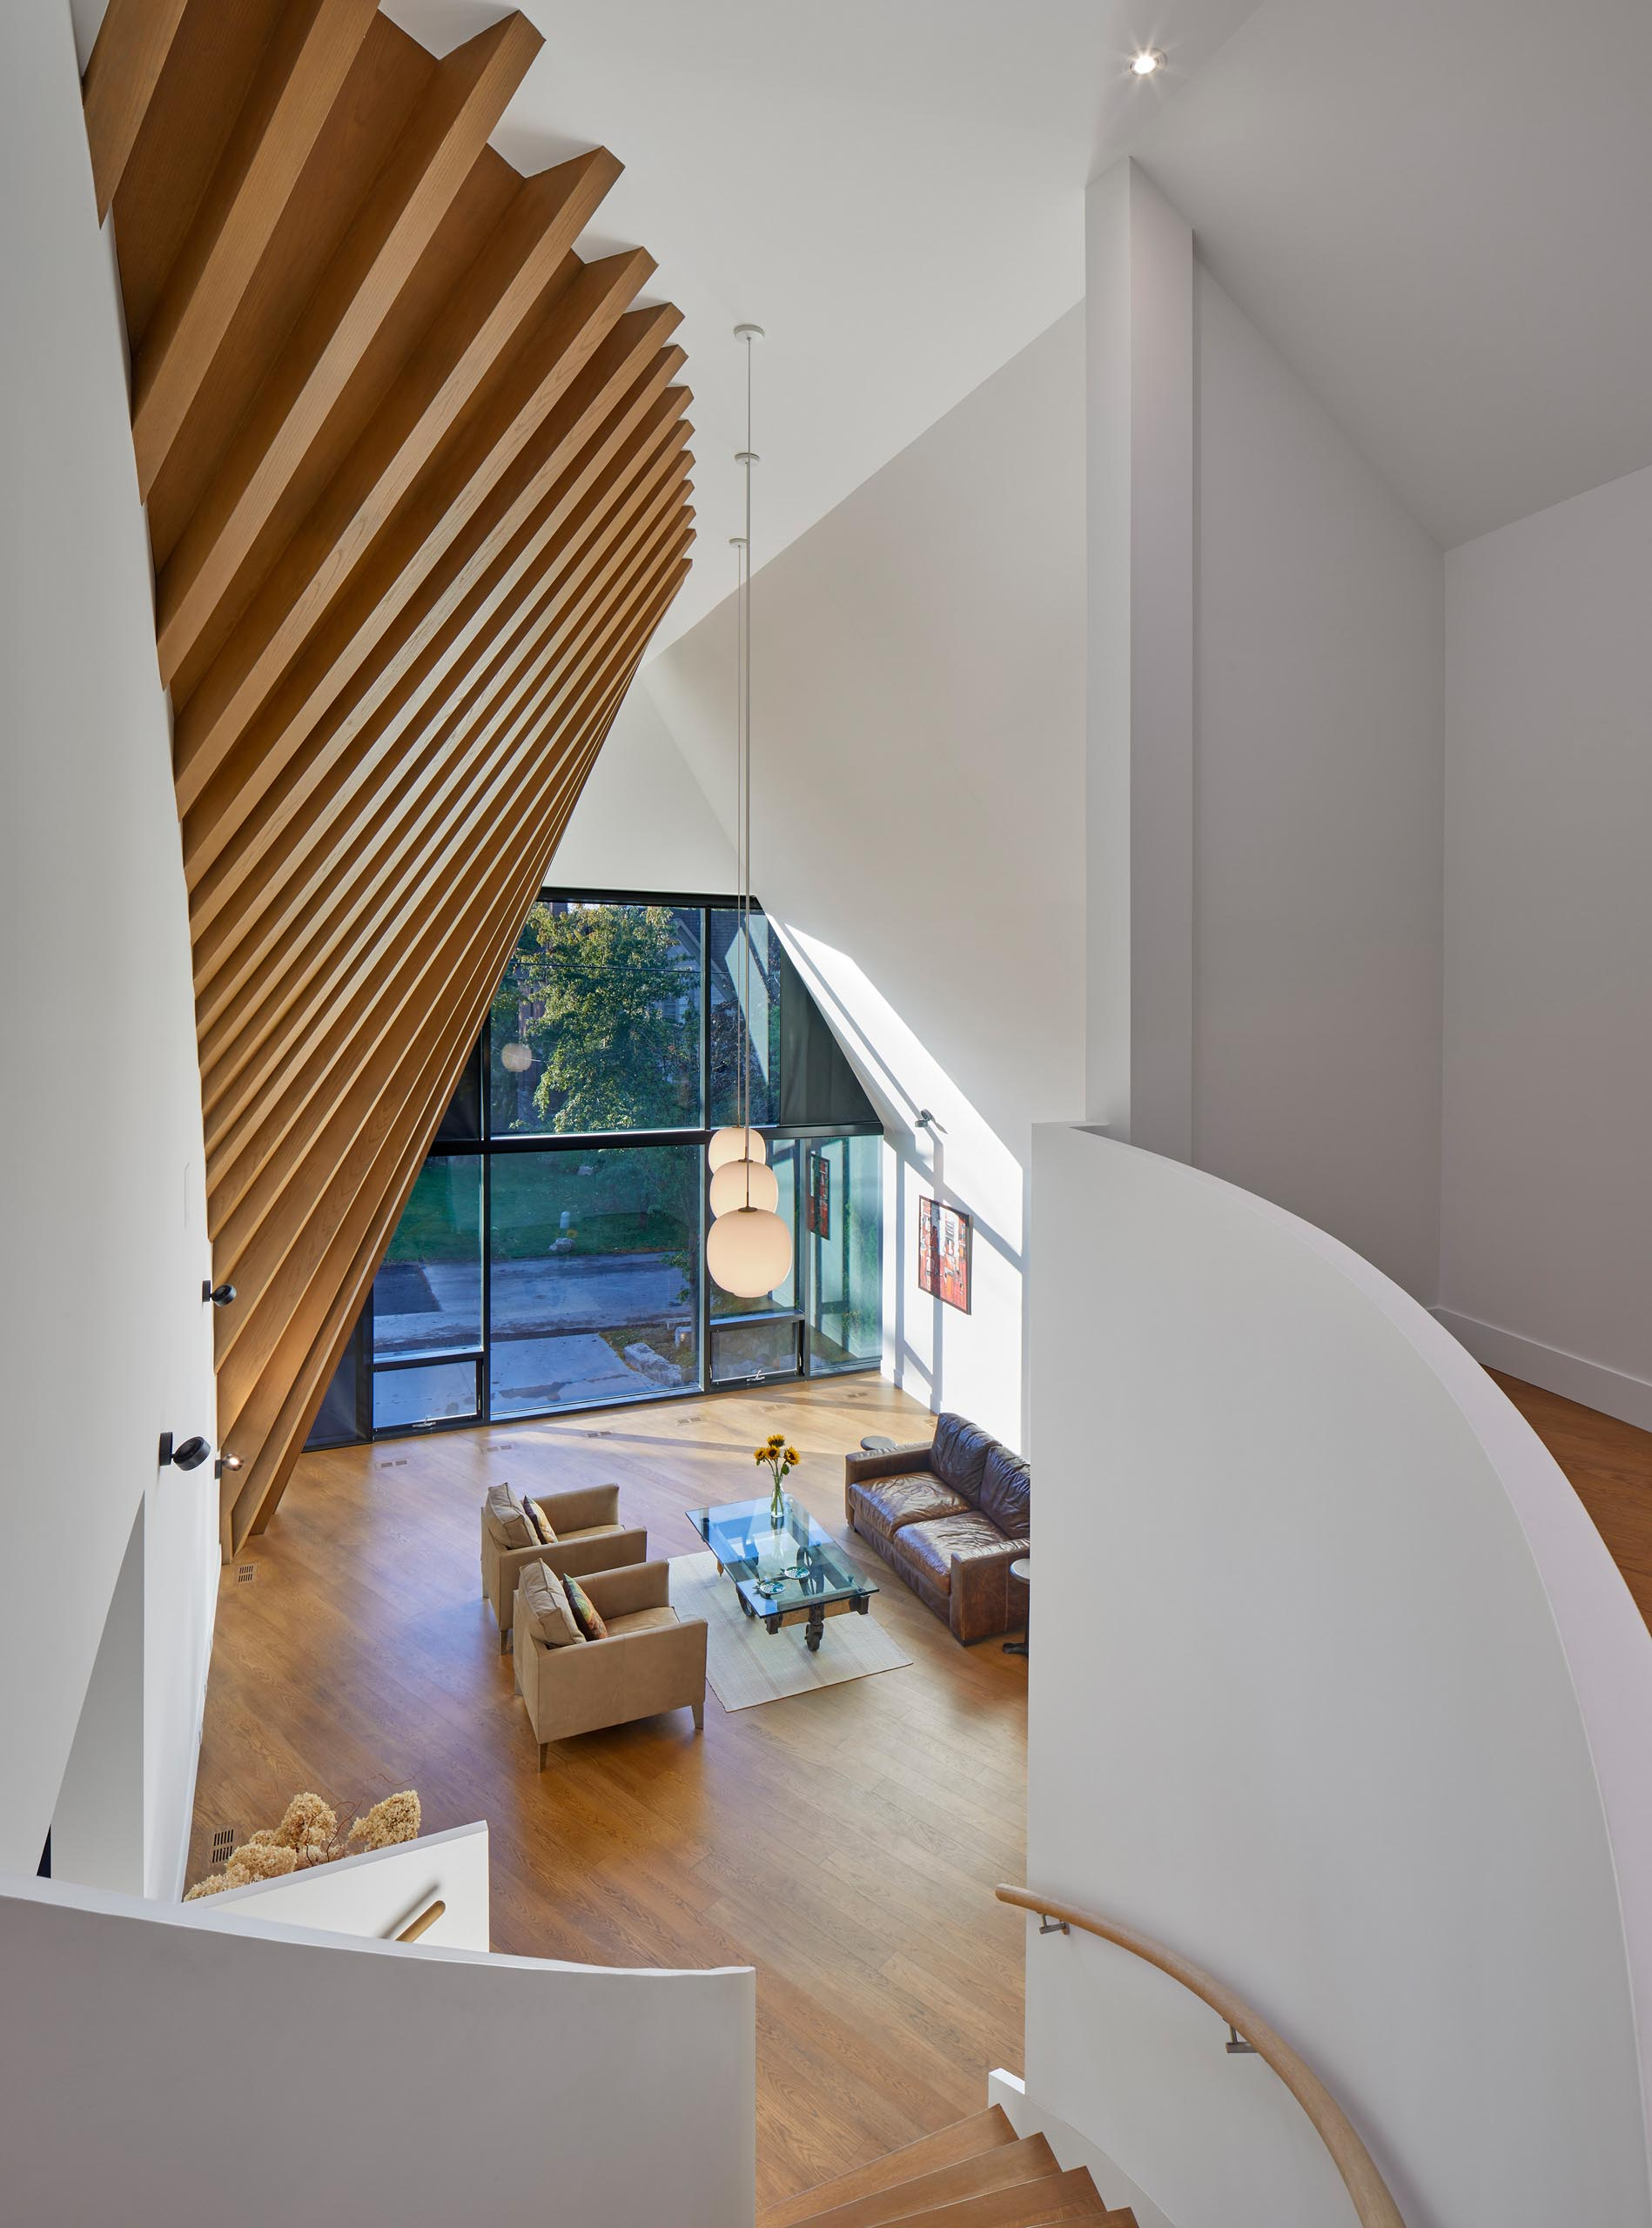 A modern home interior with exposed rafters clad with red oak veneer continue the roof's dynamic shape.